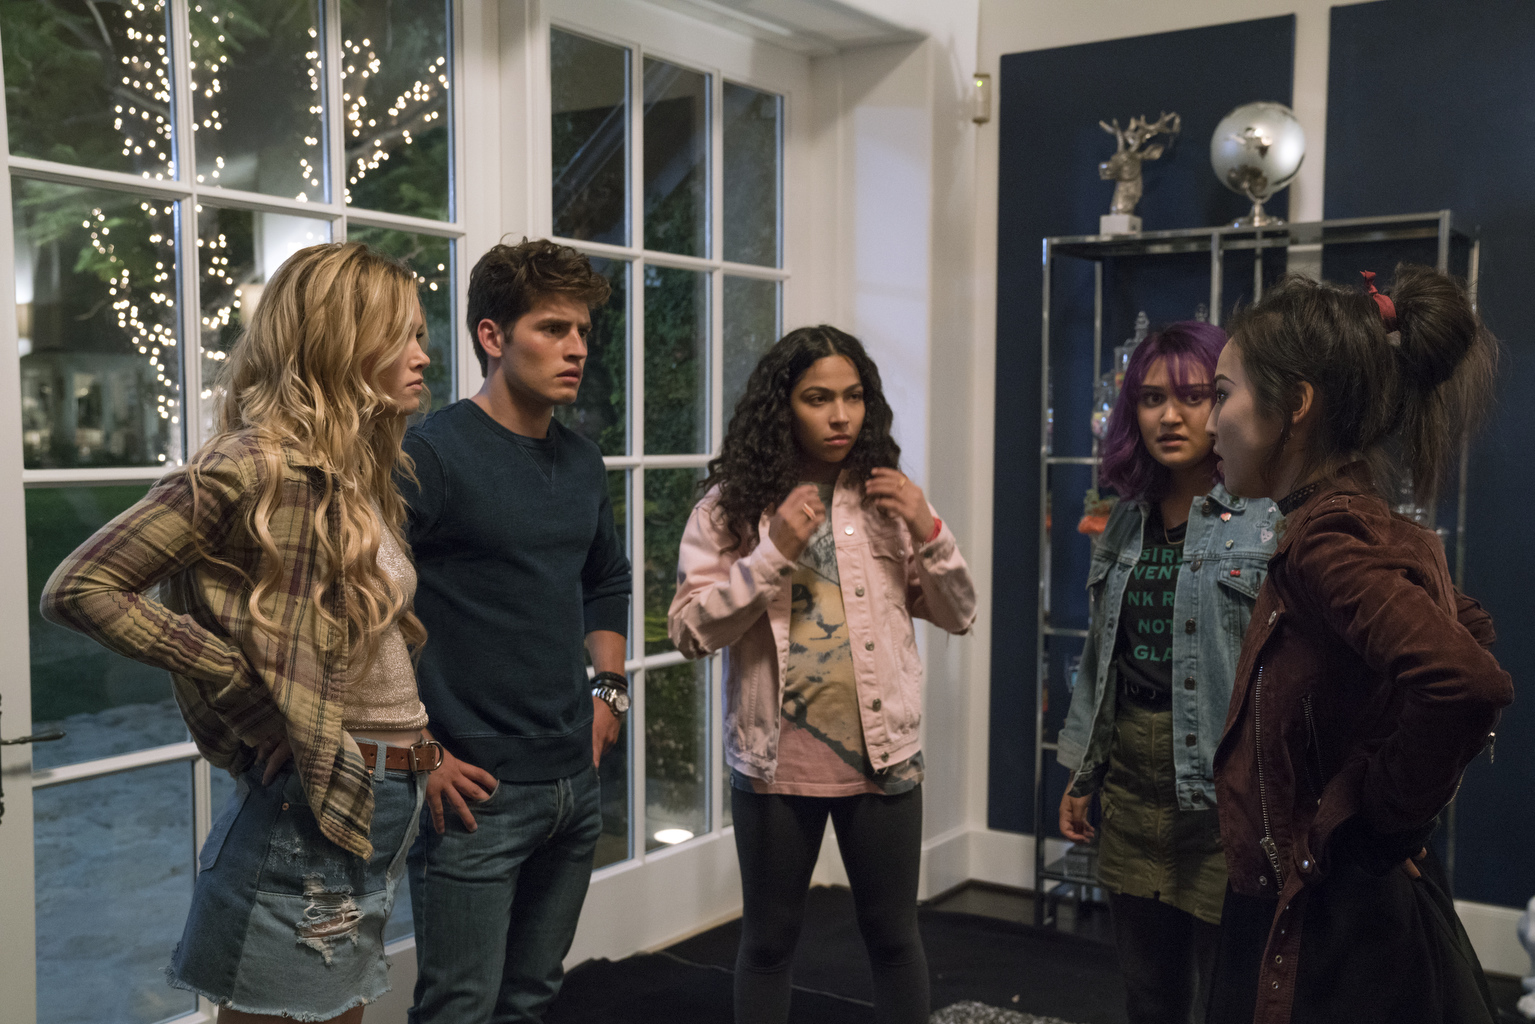 Marvel Runaways: The 6 Best Changes from The Comics to the Hulu Series |  IndieWire